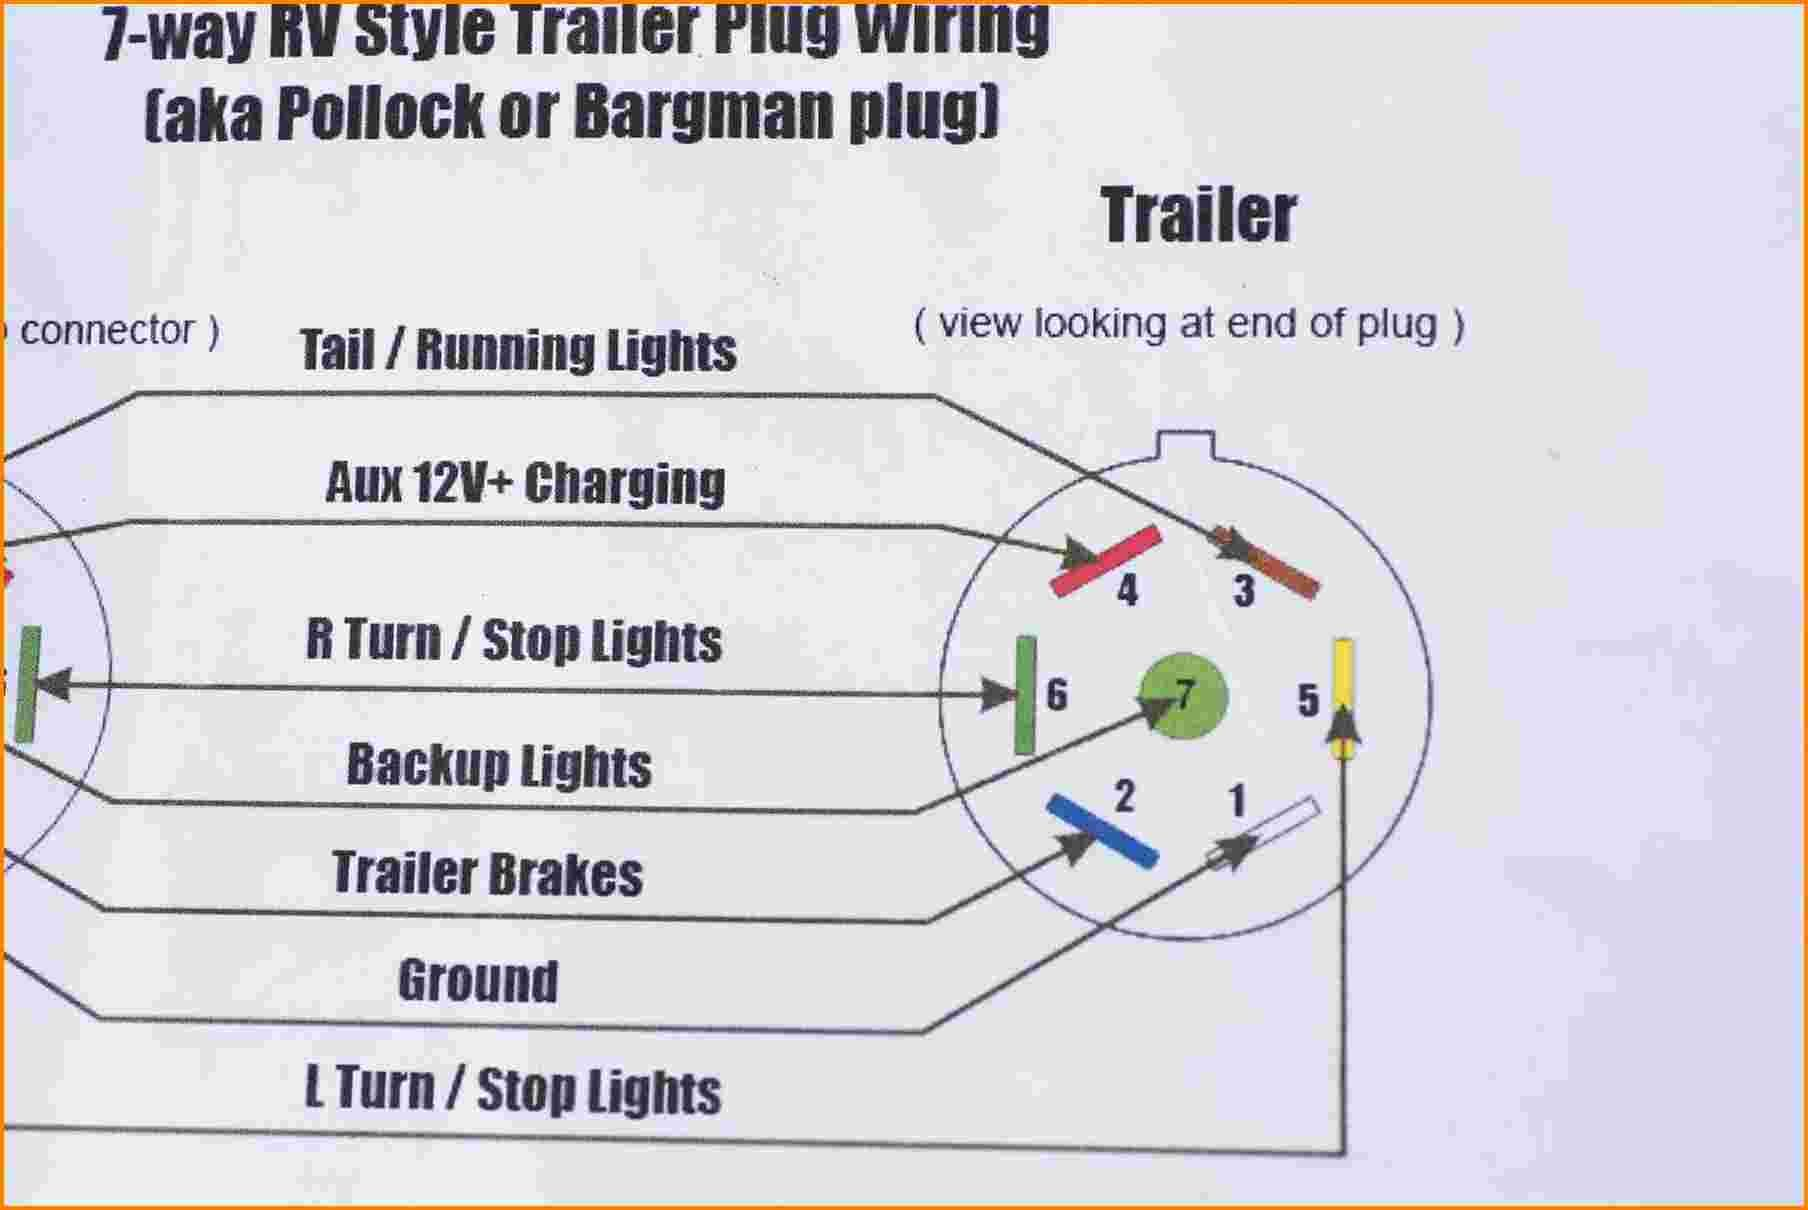 [WLLP_2054]   5037285 Vw Golf Trailer Wiring Harness | Wiring Resources | Delta Trailer Wiring Diagram |  | Wiring Resources